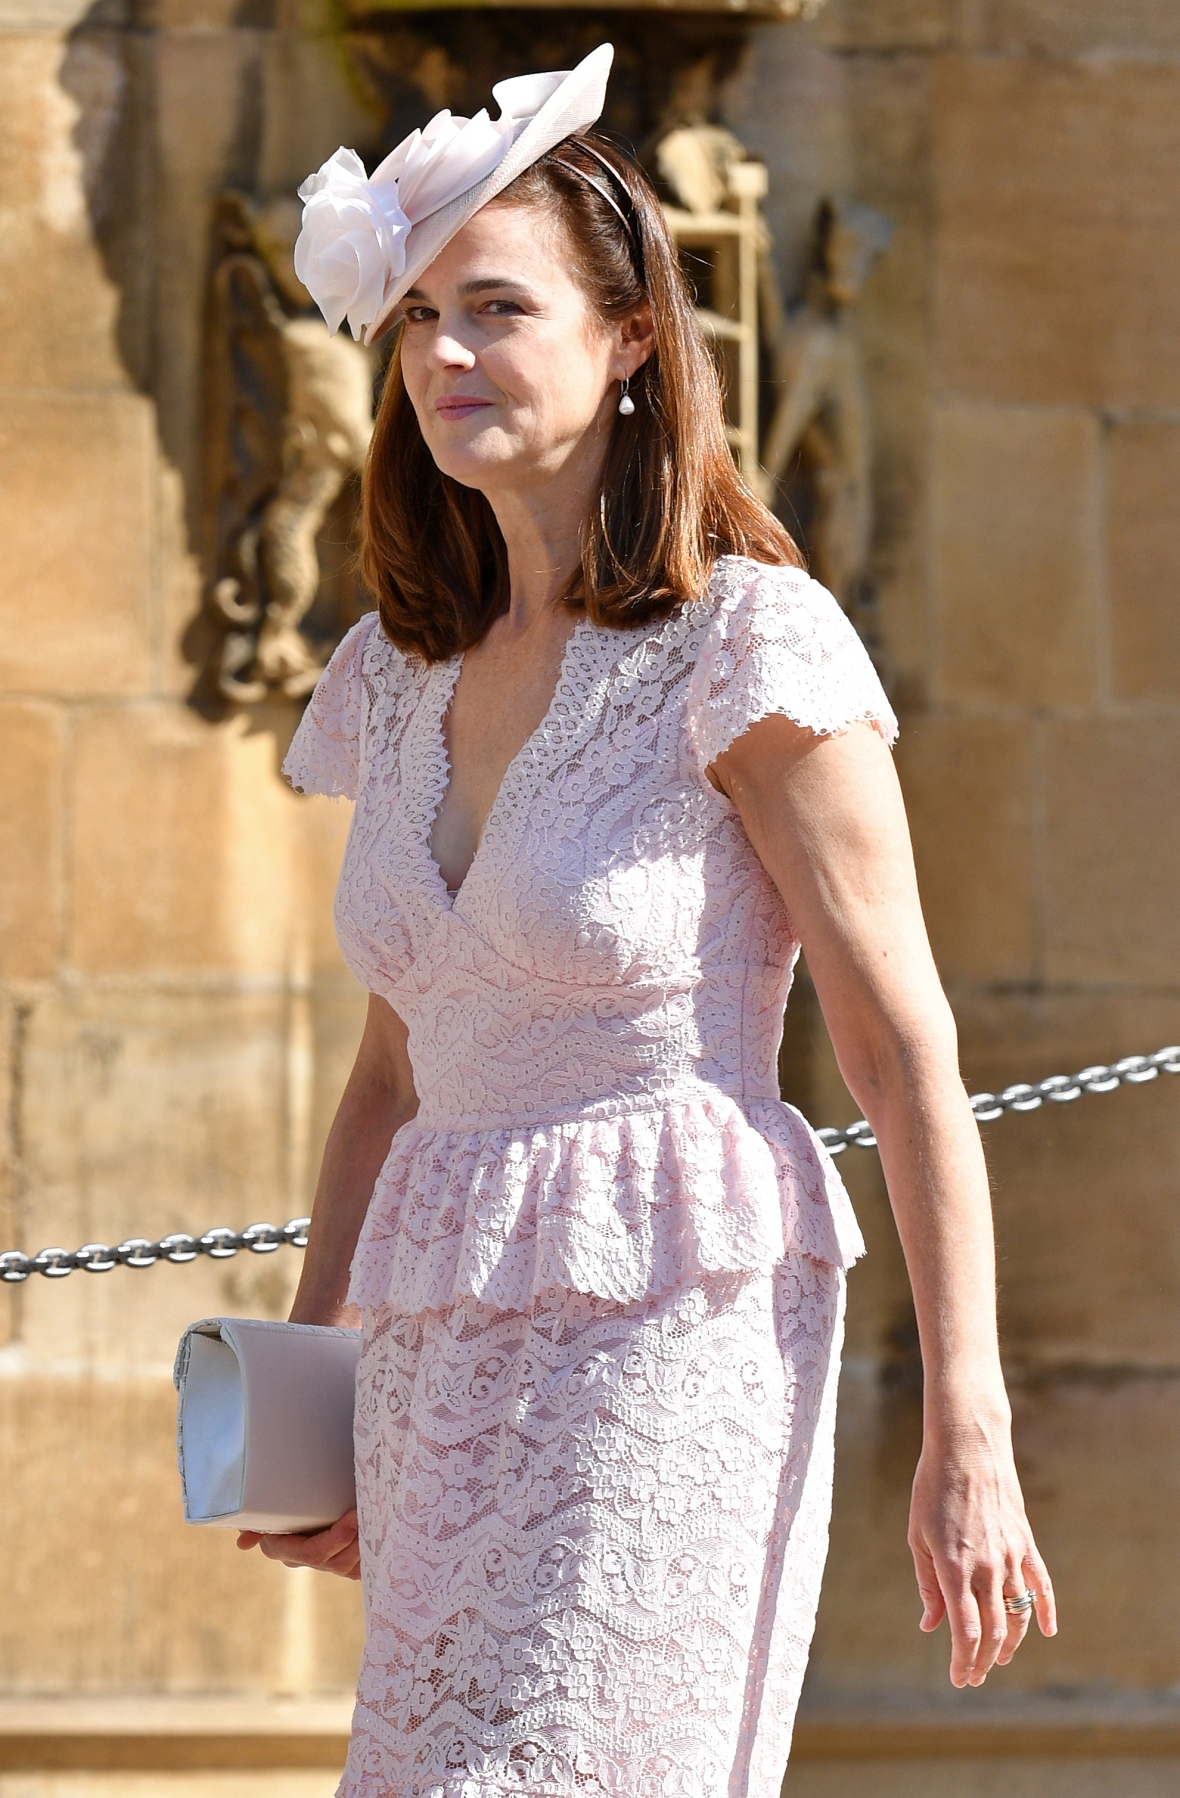 samantha cohen attends royal wedding getty images